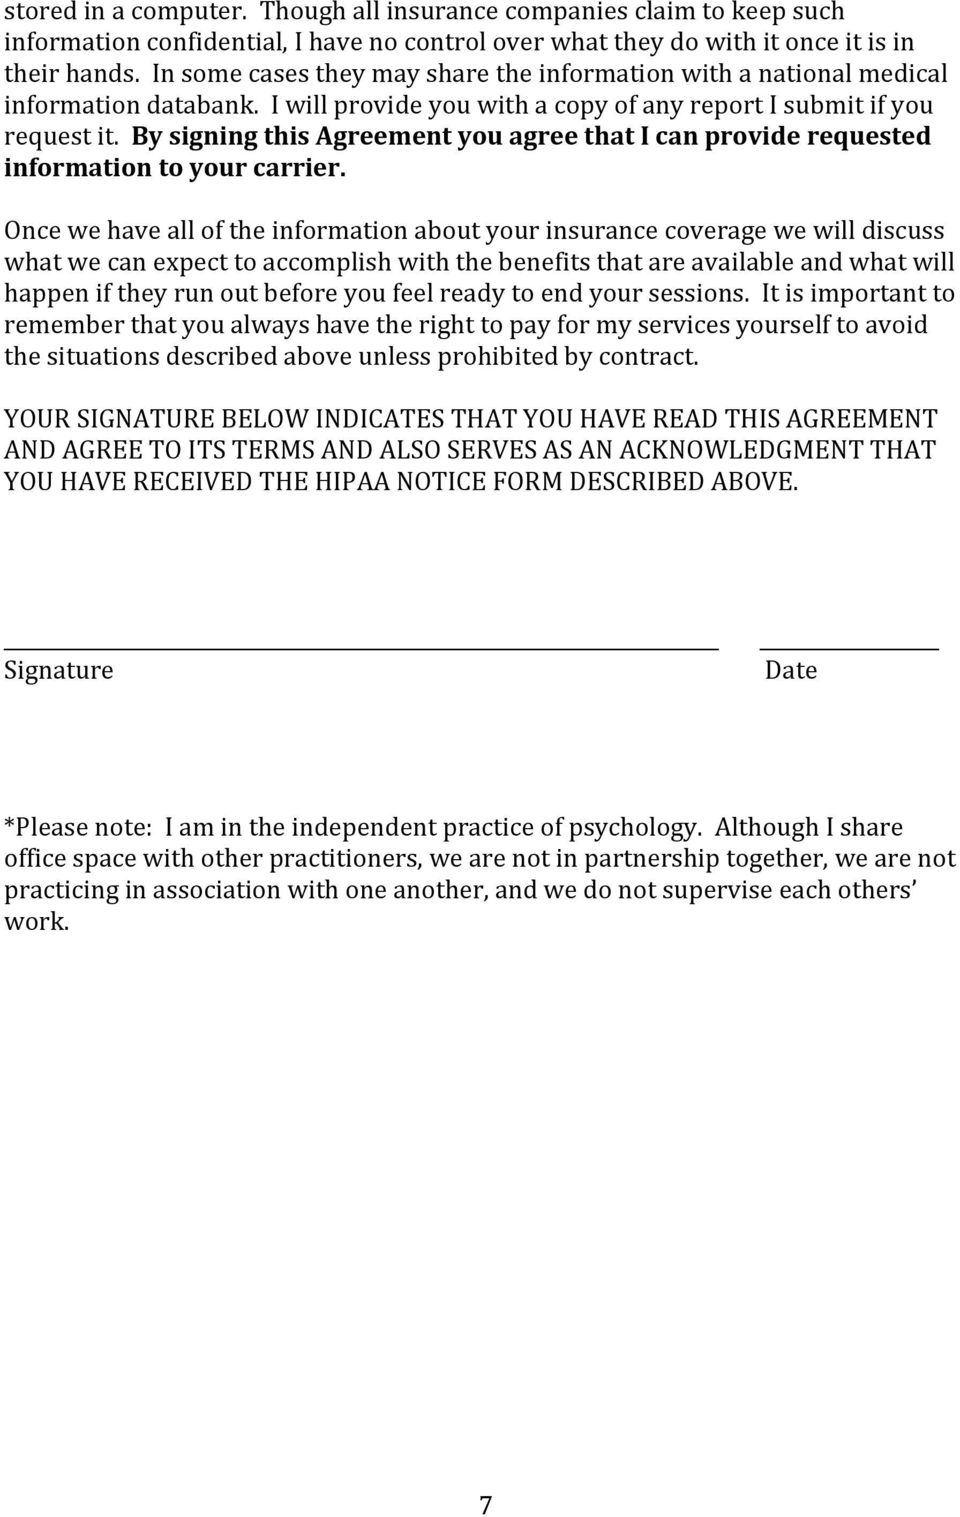 By signing this Agreement you agree that I can provide requested information to your carrier.